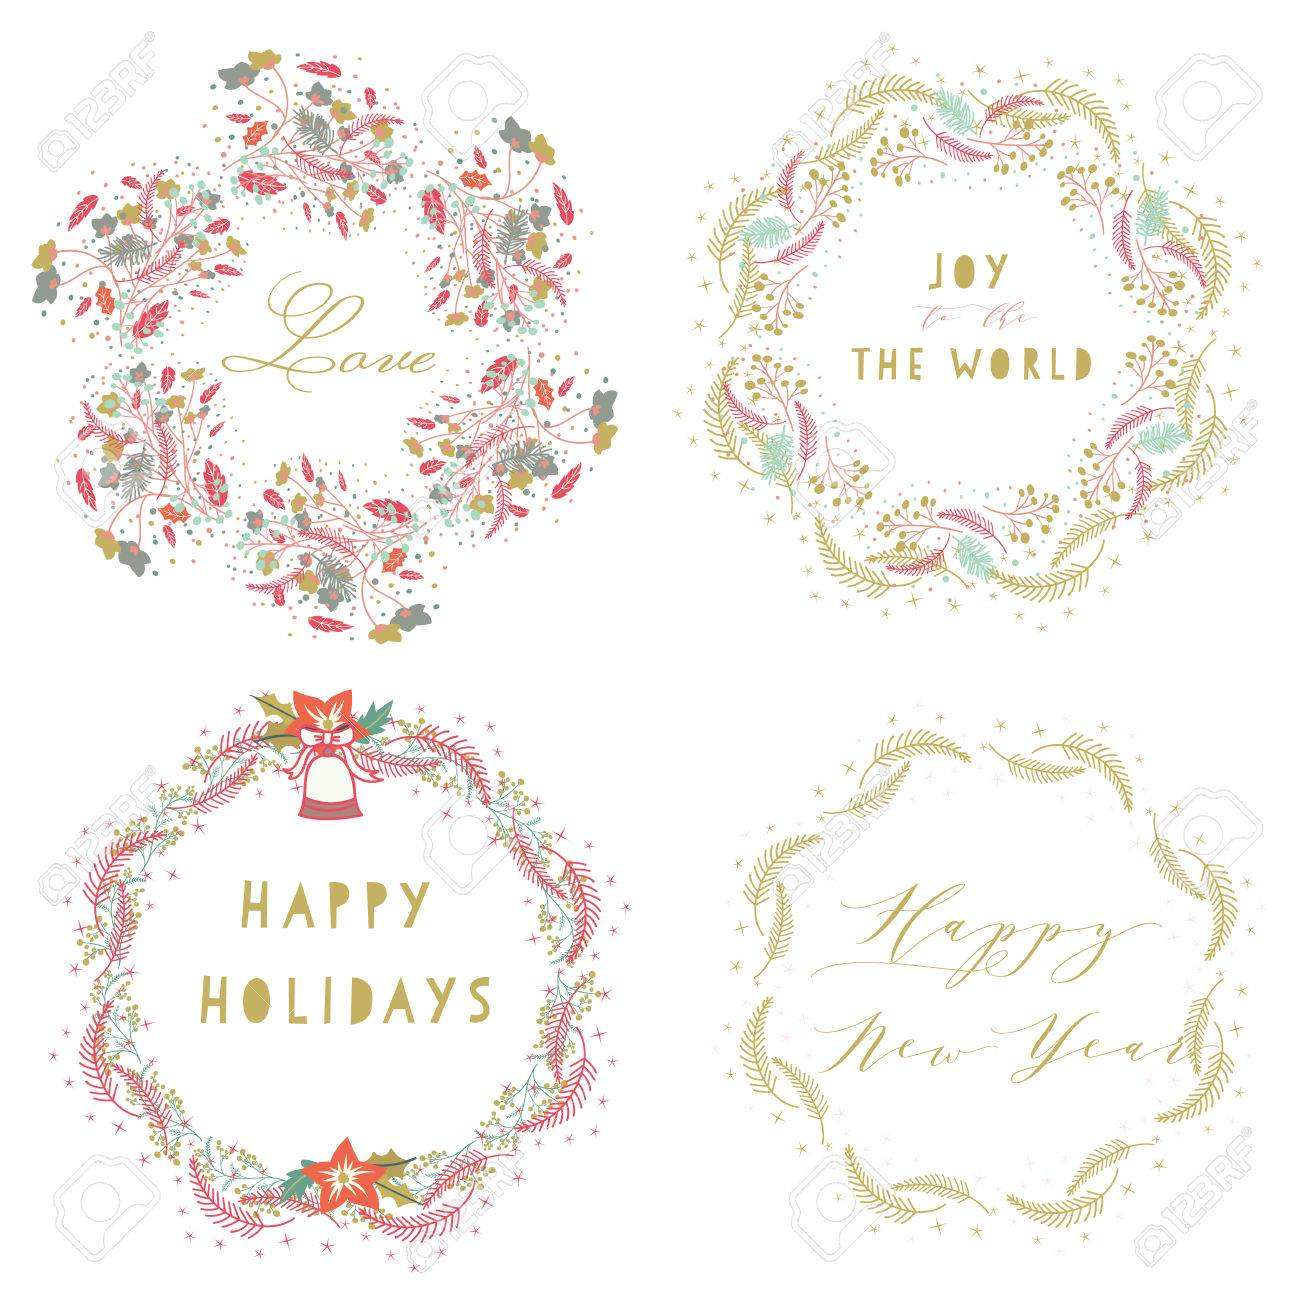 Whimsical Hand Drawn Of Celebration Wreaths For Happy Holidays,happy ...